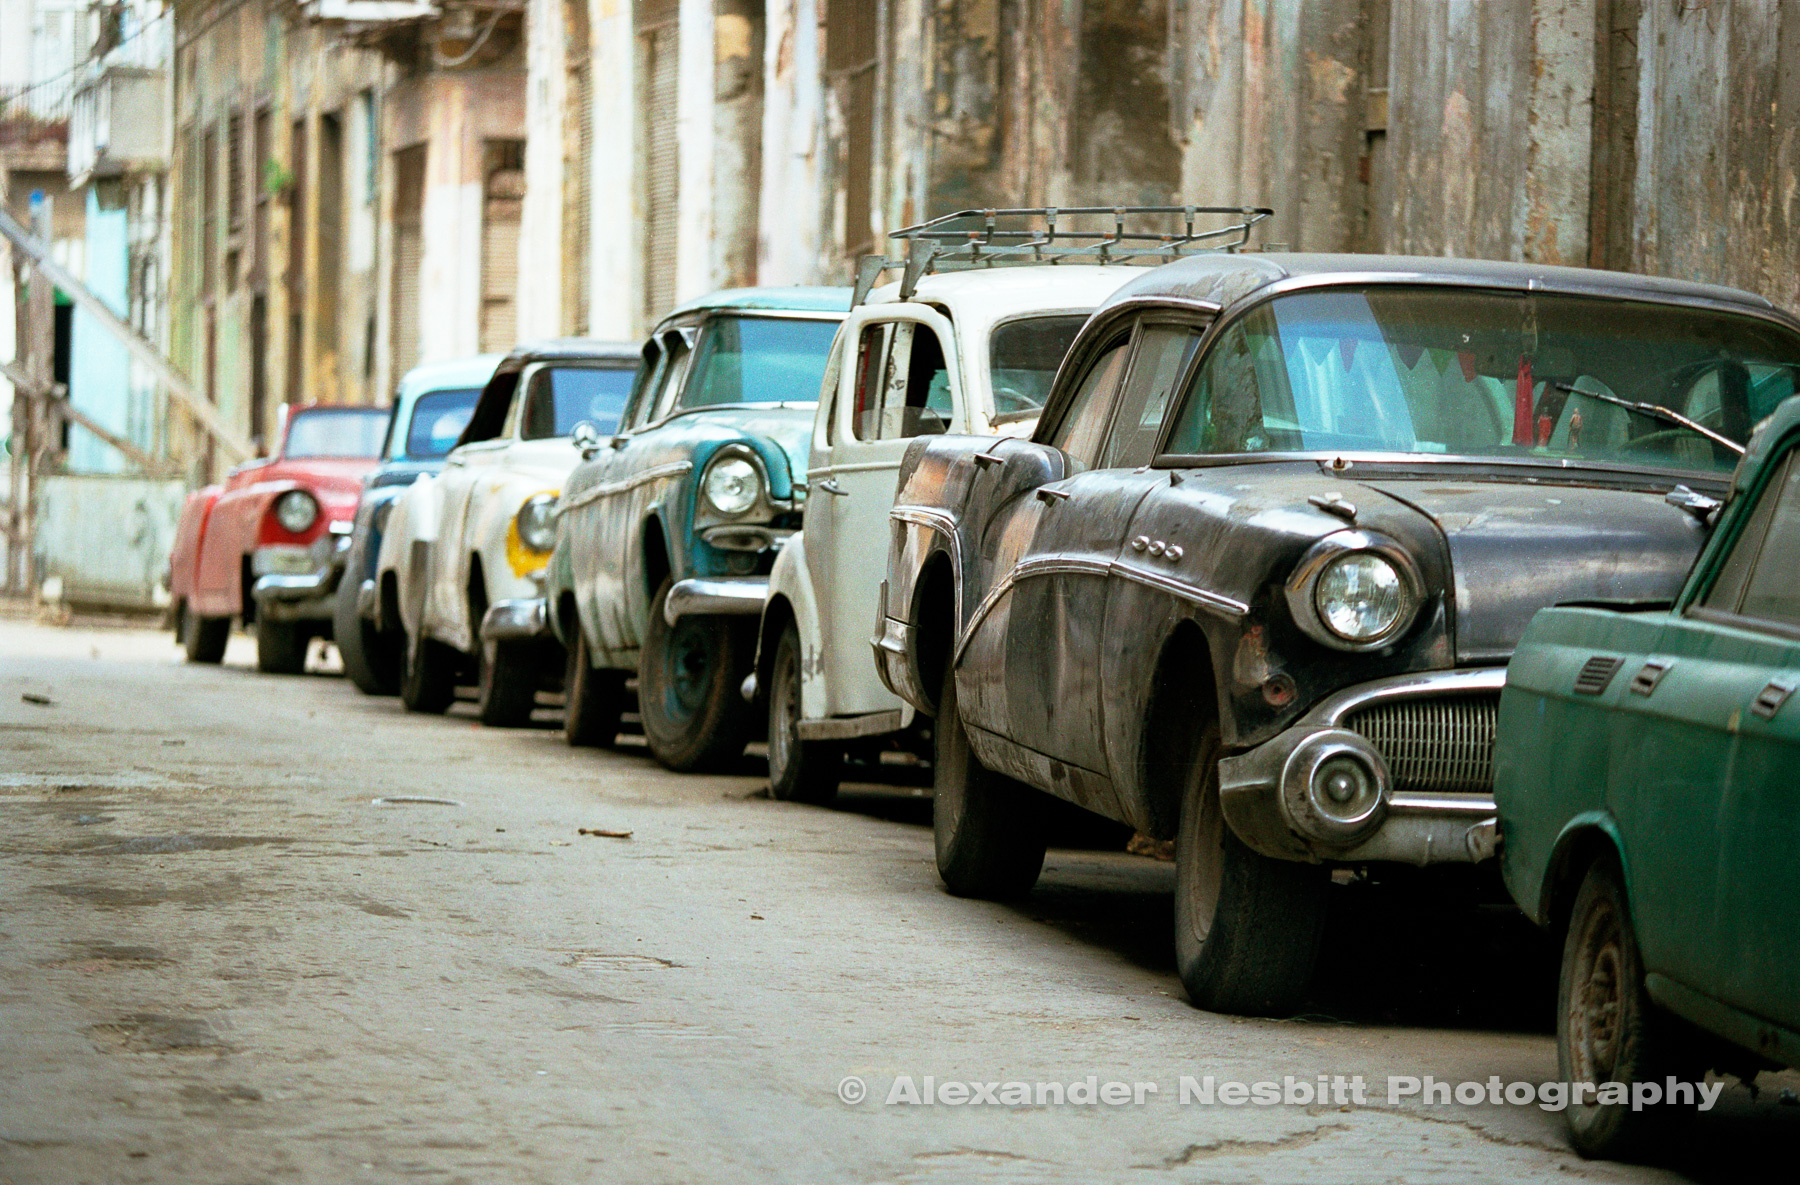 Cuba, Havana 1997- Line of old cars parked in Havana